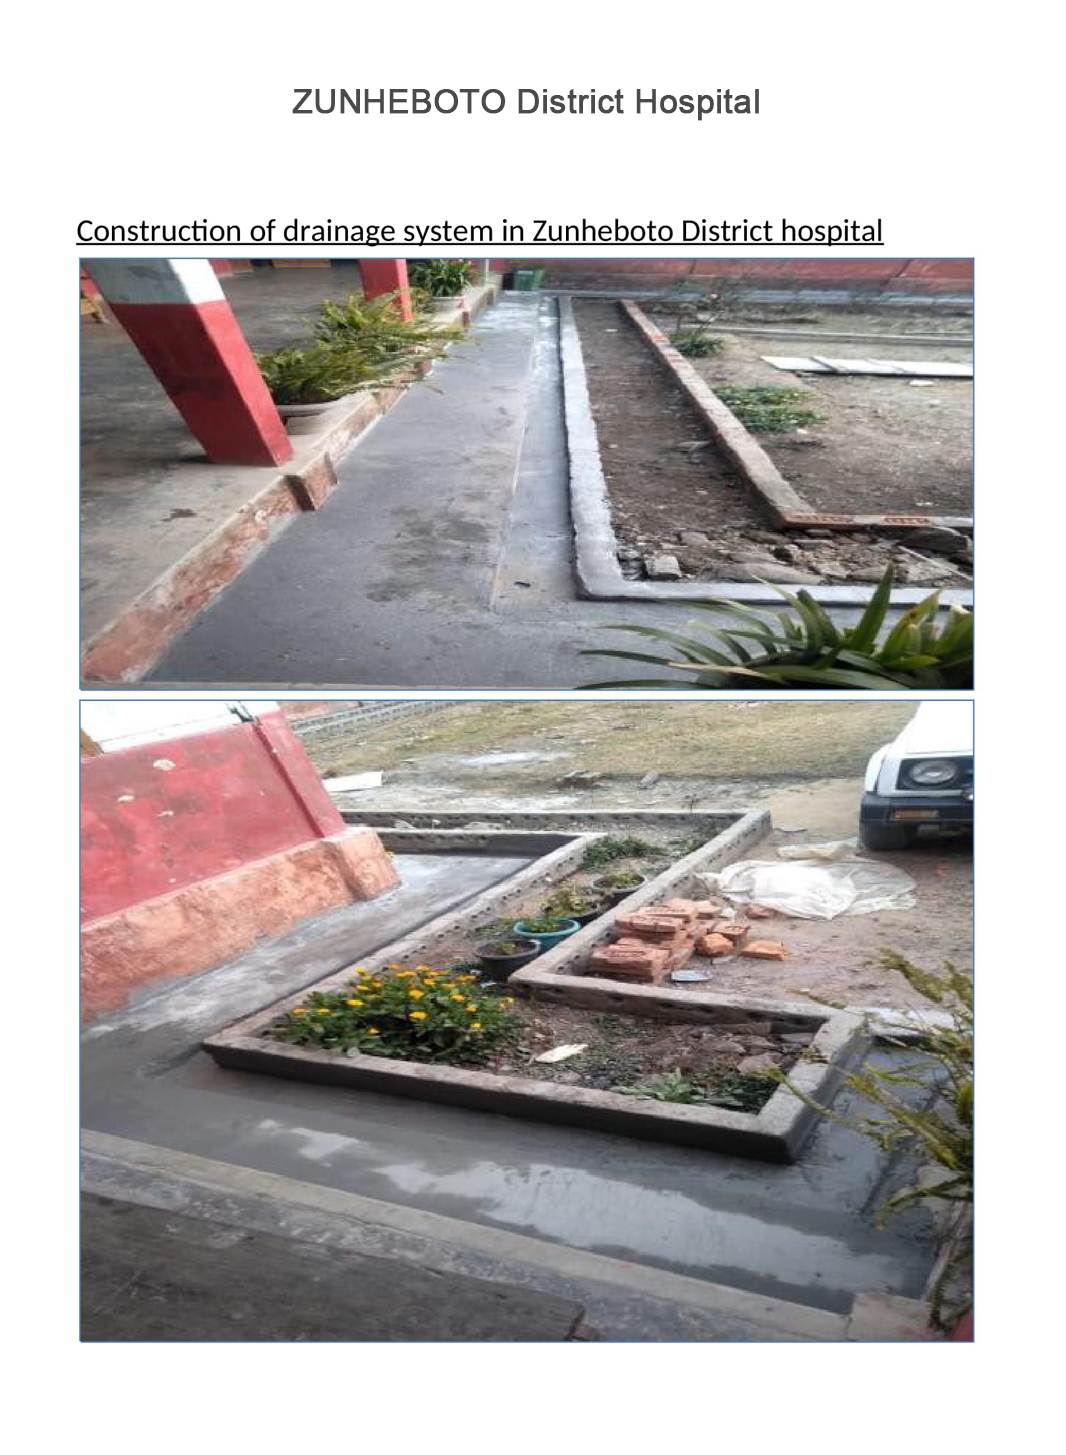 Construction-of-drainage-system-in-Zunheboto-District-hospital